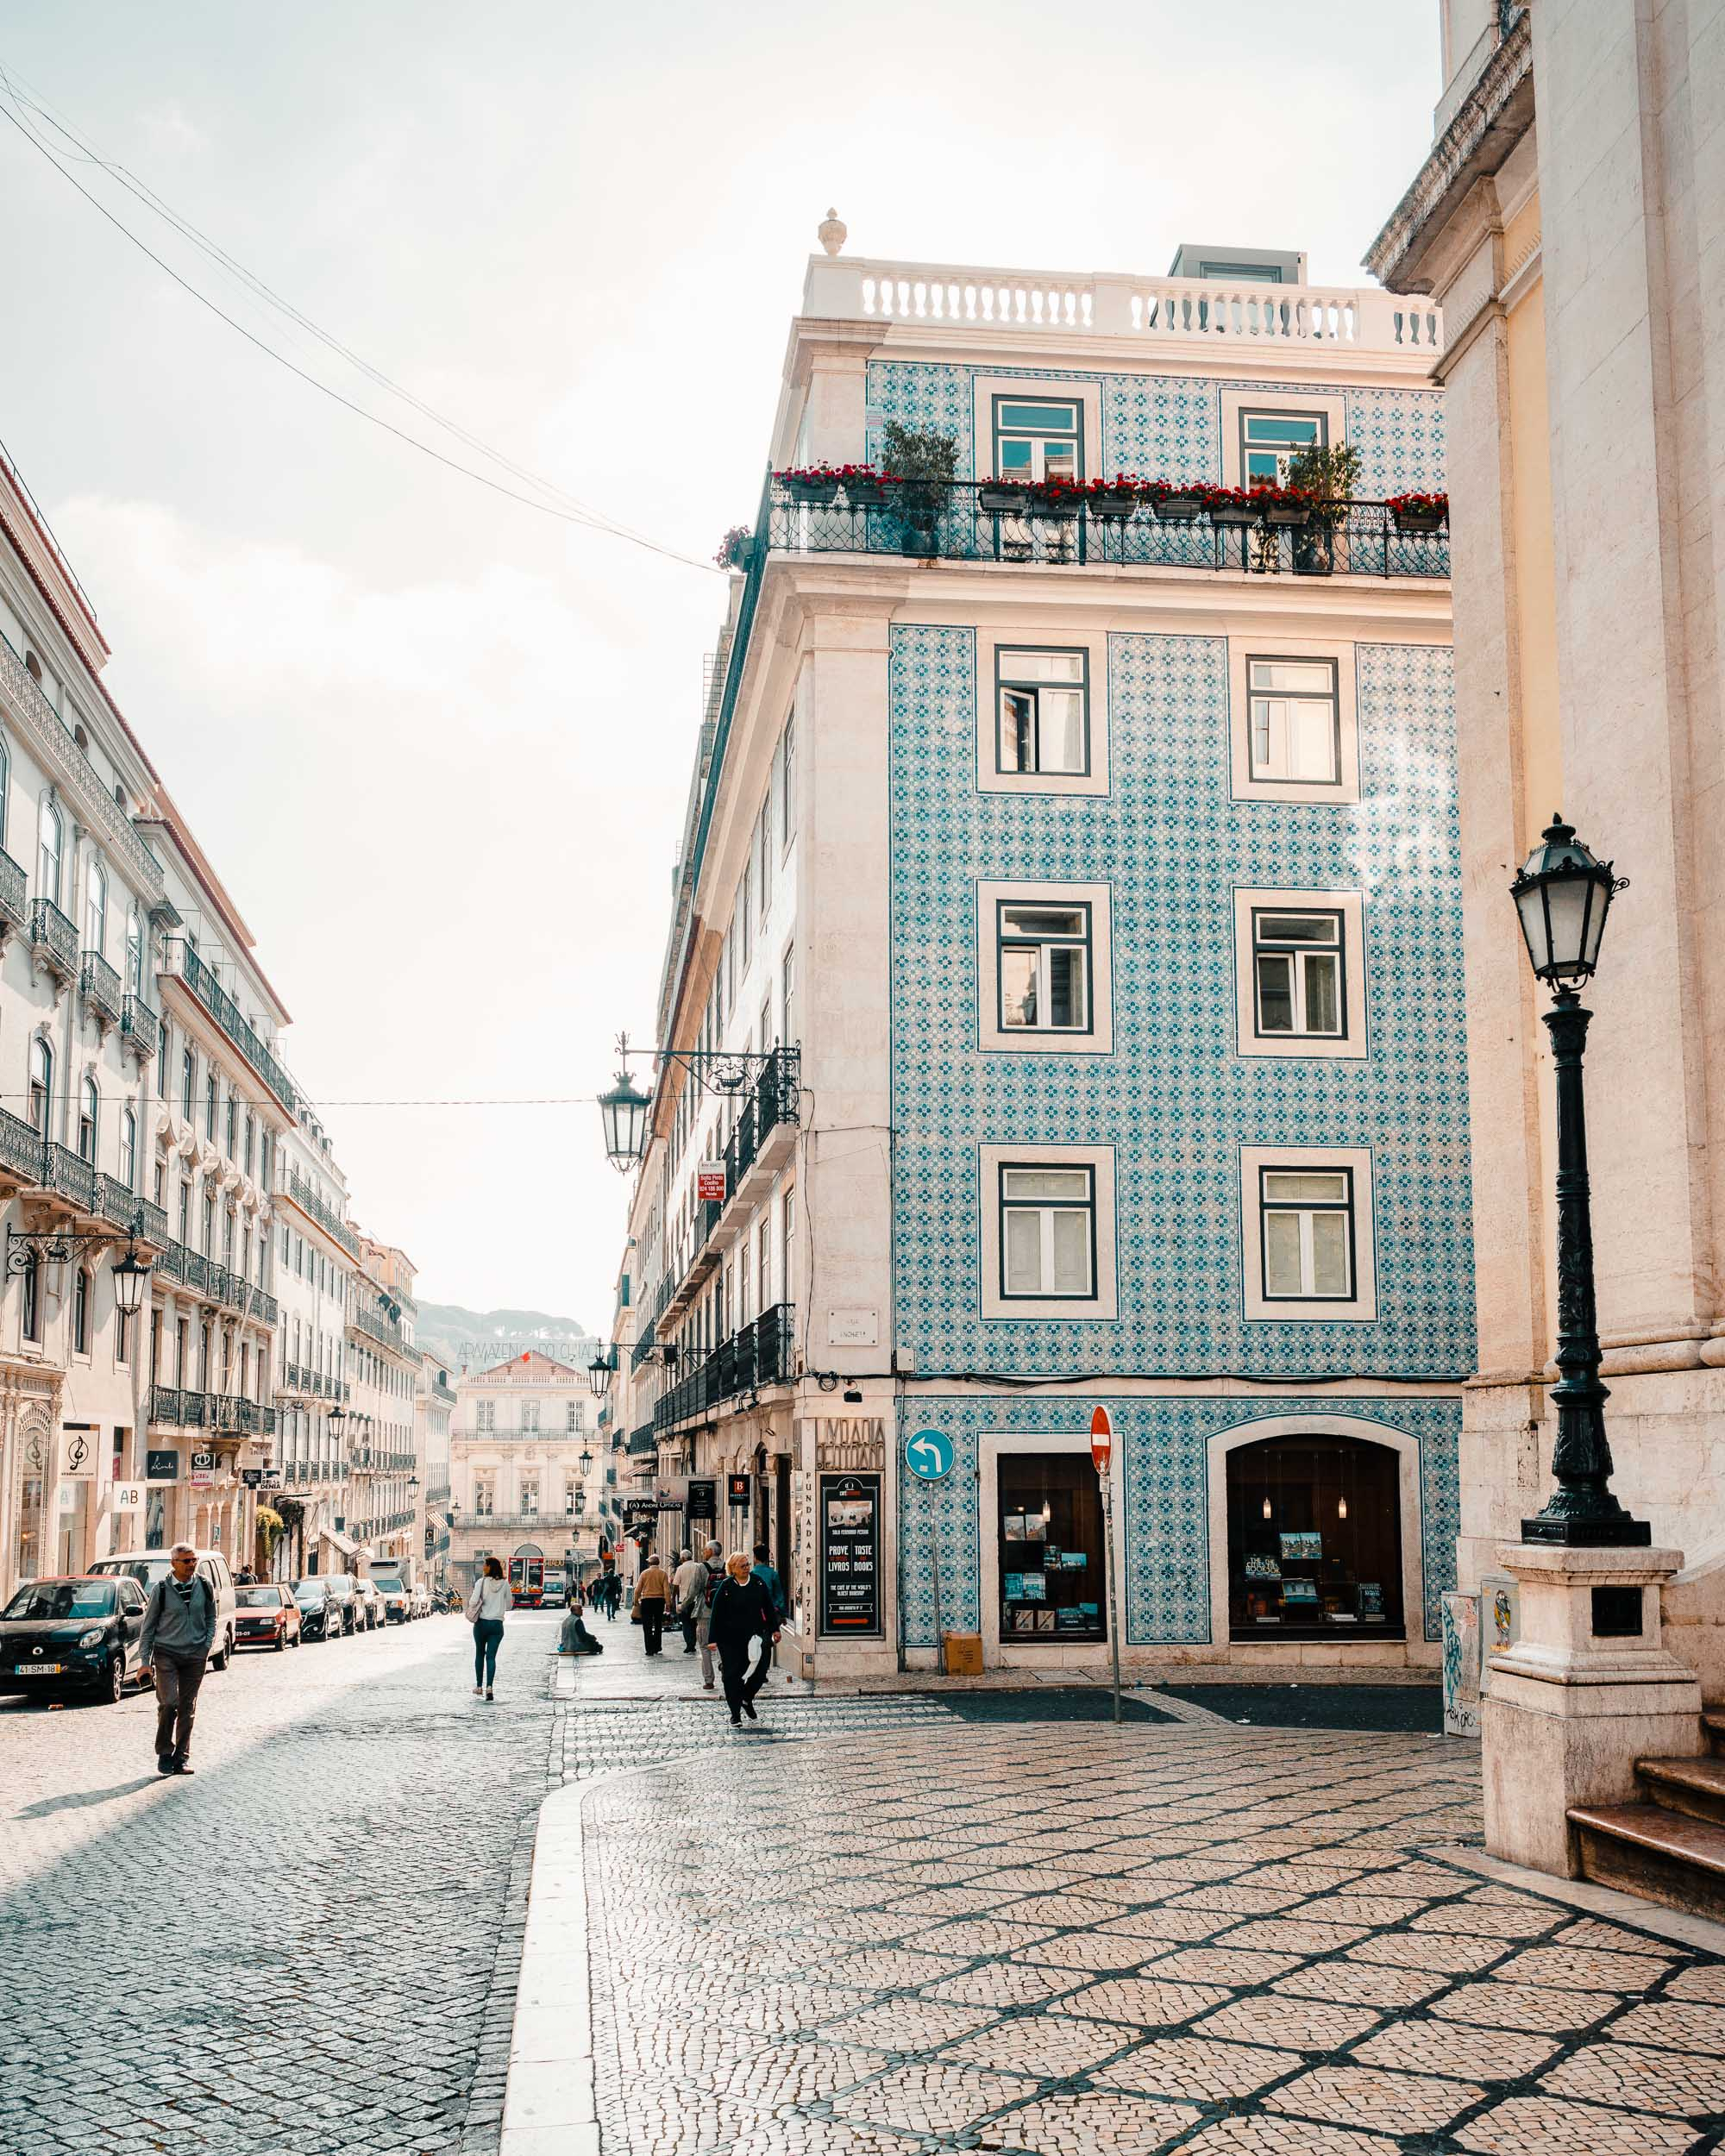 Blue tiled buildings and walking streets in Lisbon, Portugal | Lisbon Travel Guide via Find Us Lost